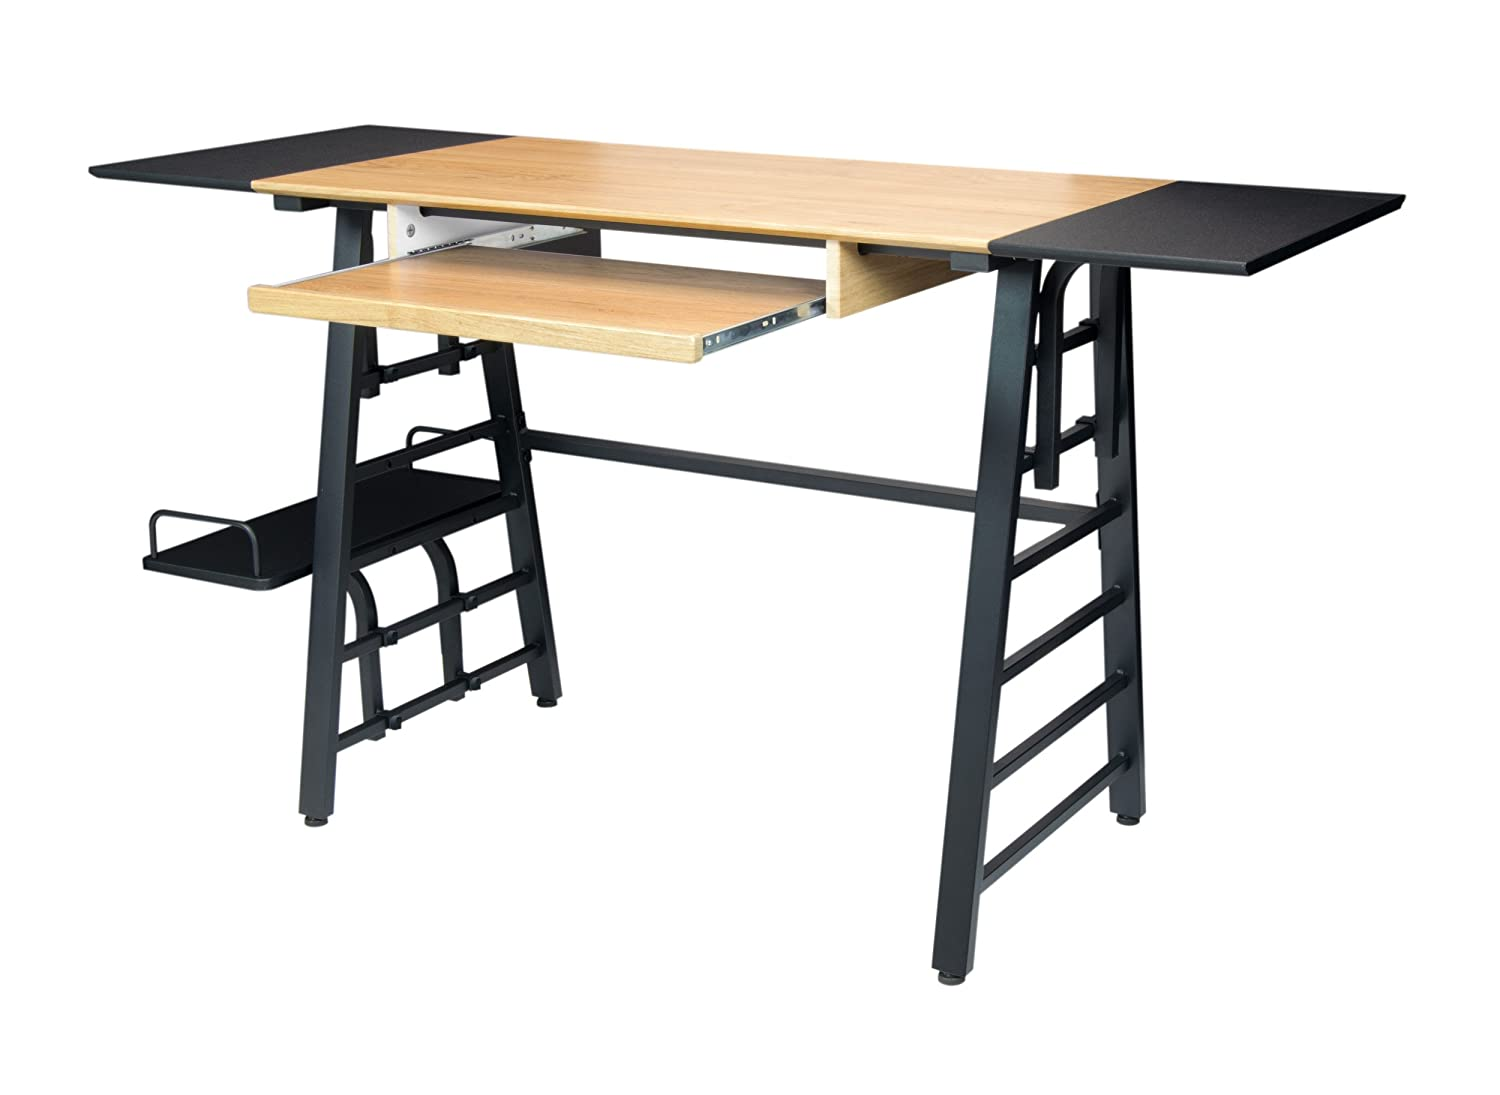 Table drawing for kids - Amazon Com Calico Designs 51240 Convertible Art Drawing Computer Desk For Kids Ashwood Graphite Arts Crafts Sewing